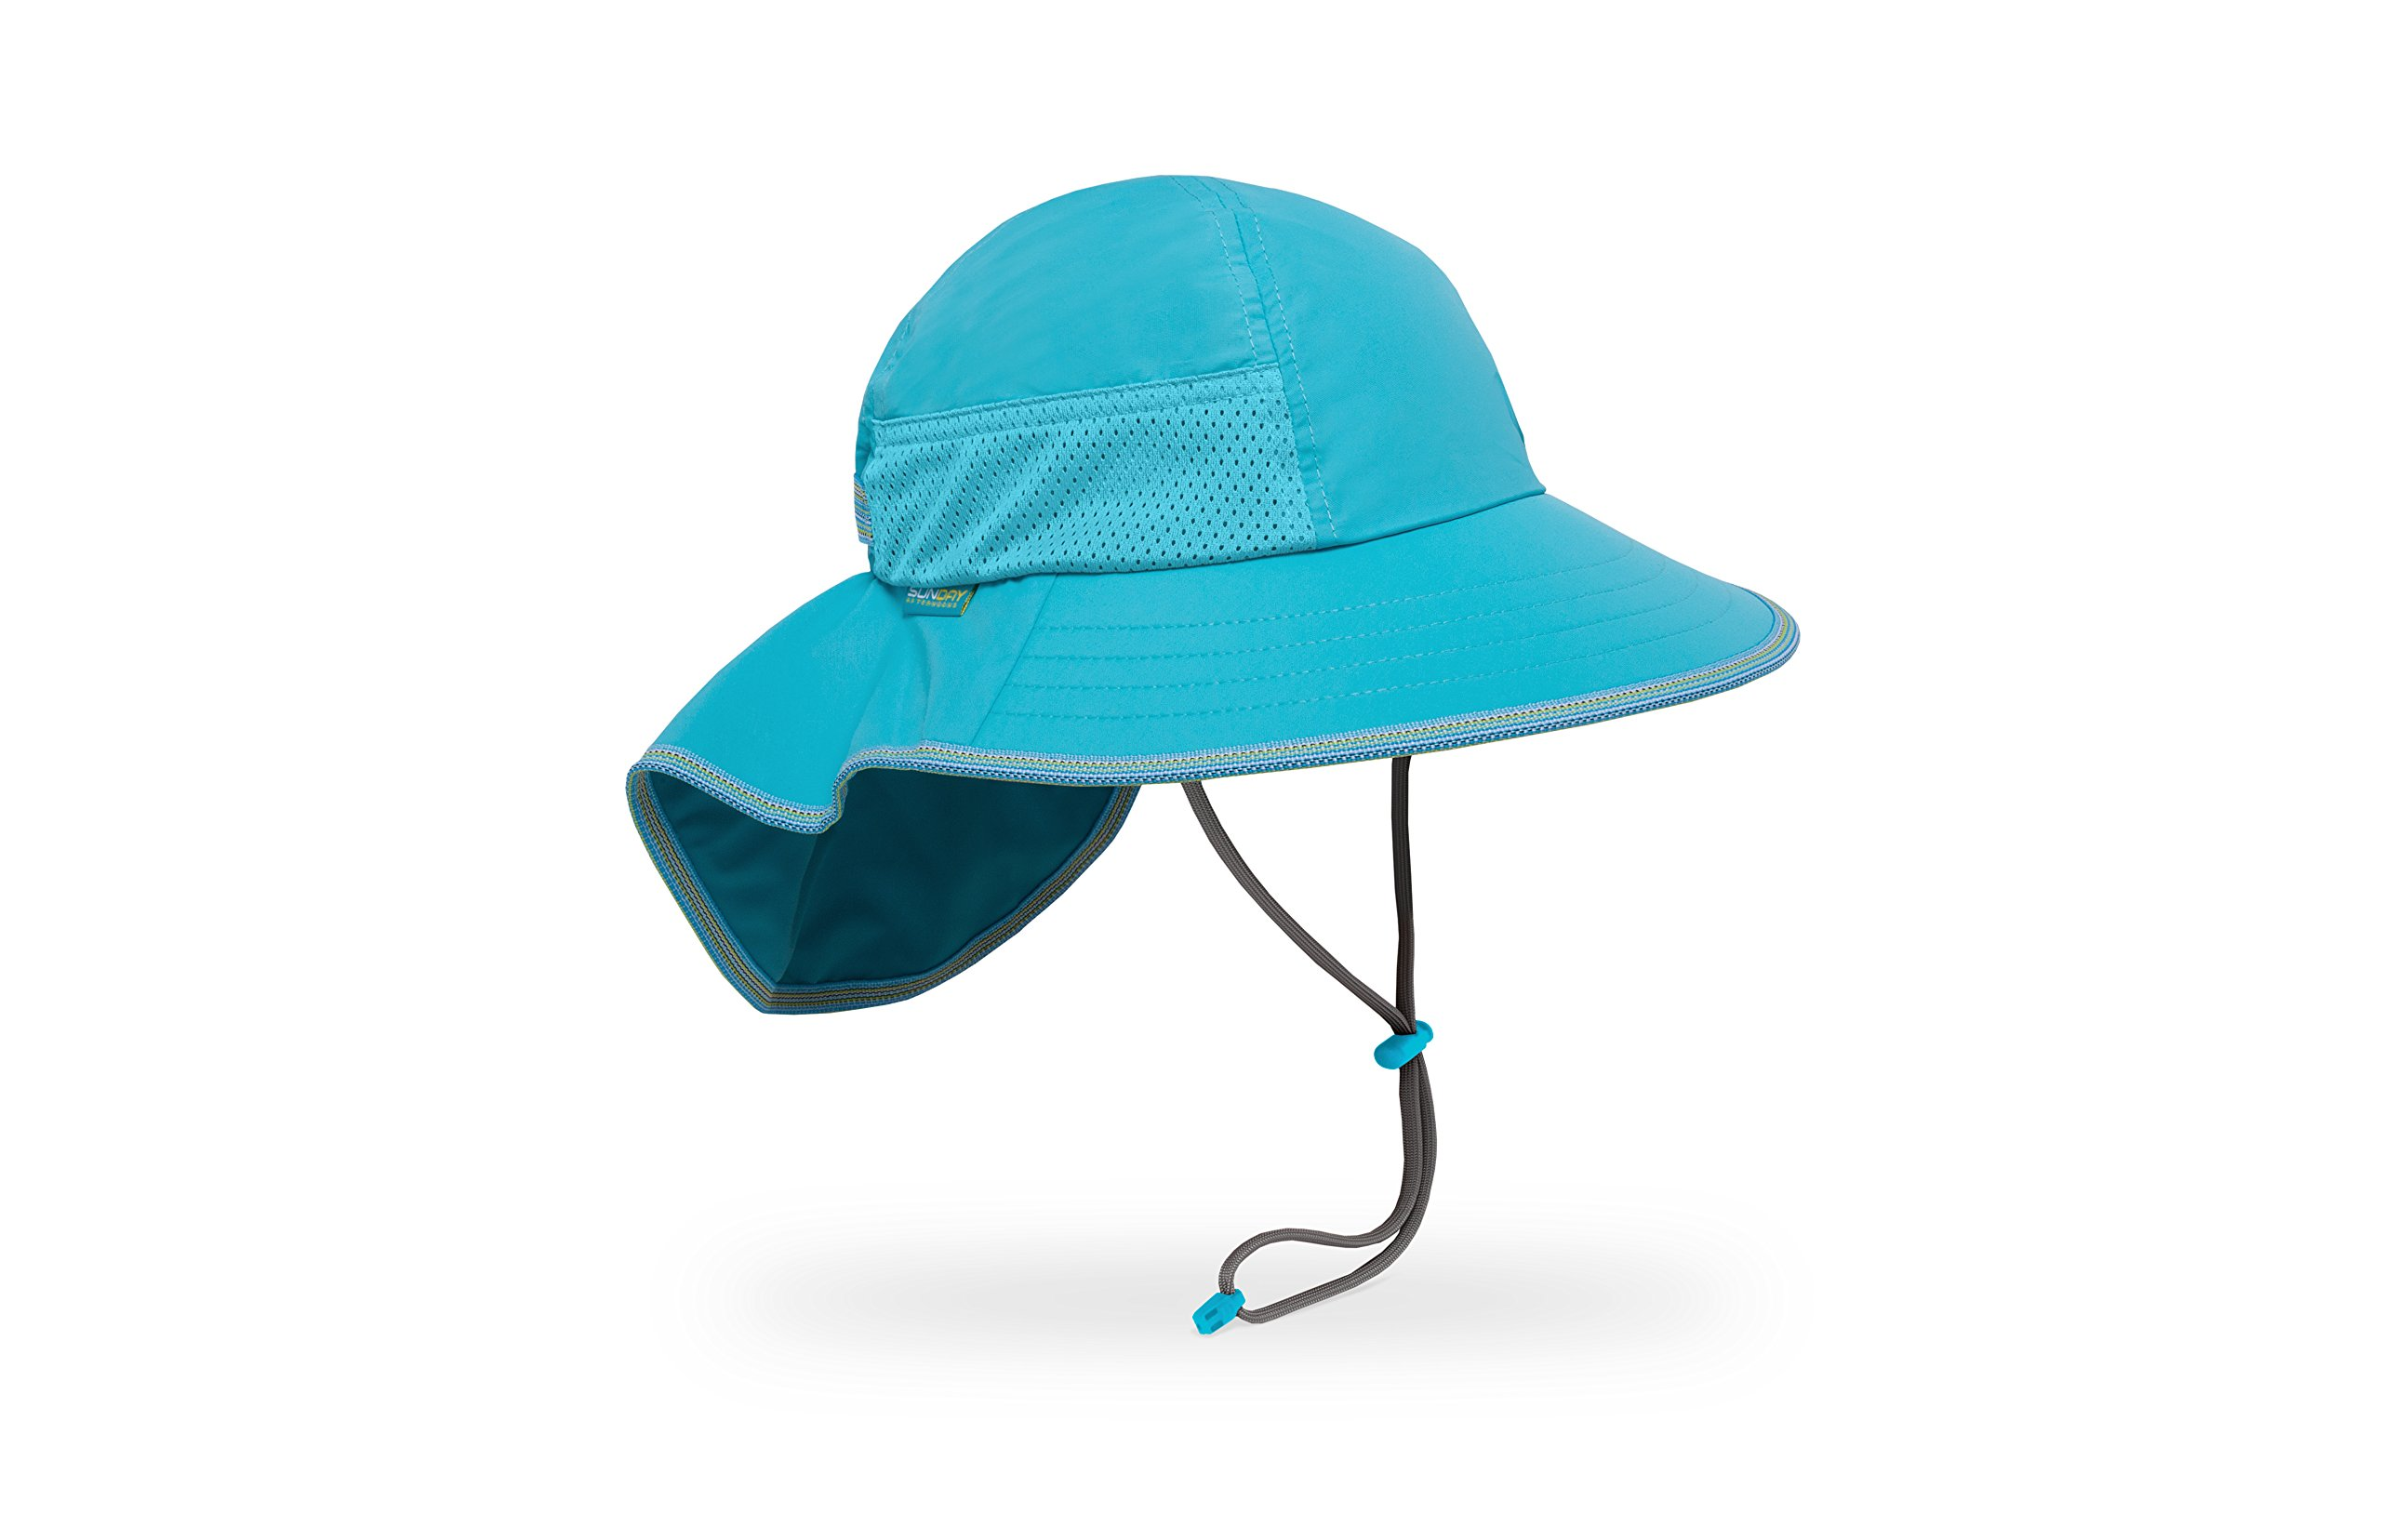 Sunday Afternoons Kids & Baby Little Kids Play Hat, Bluebird, Small